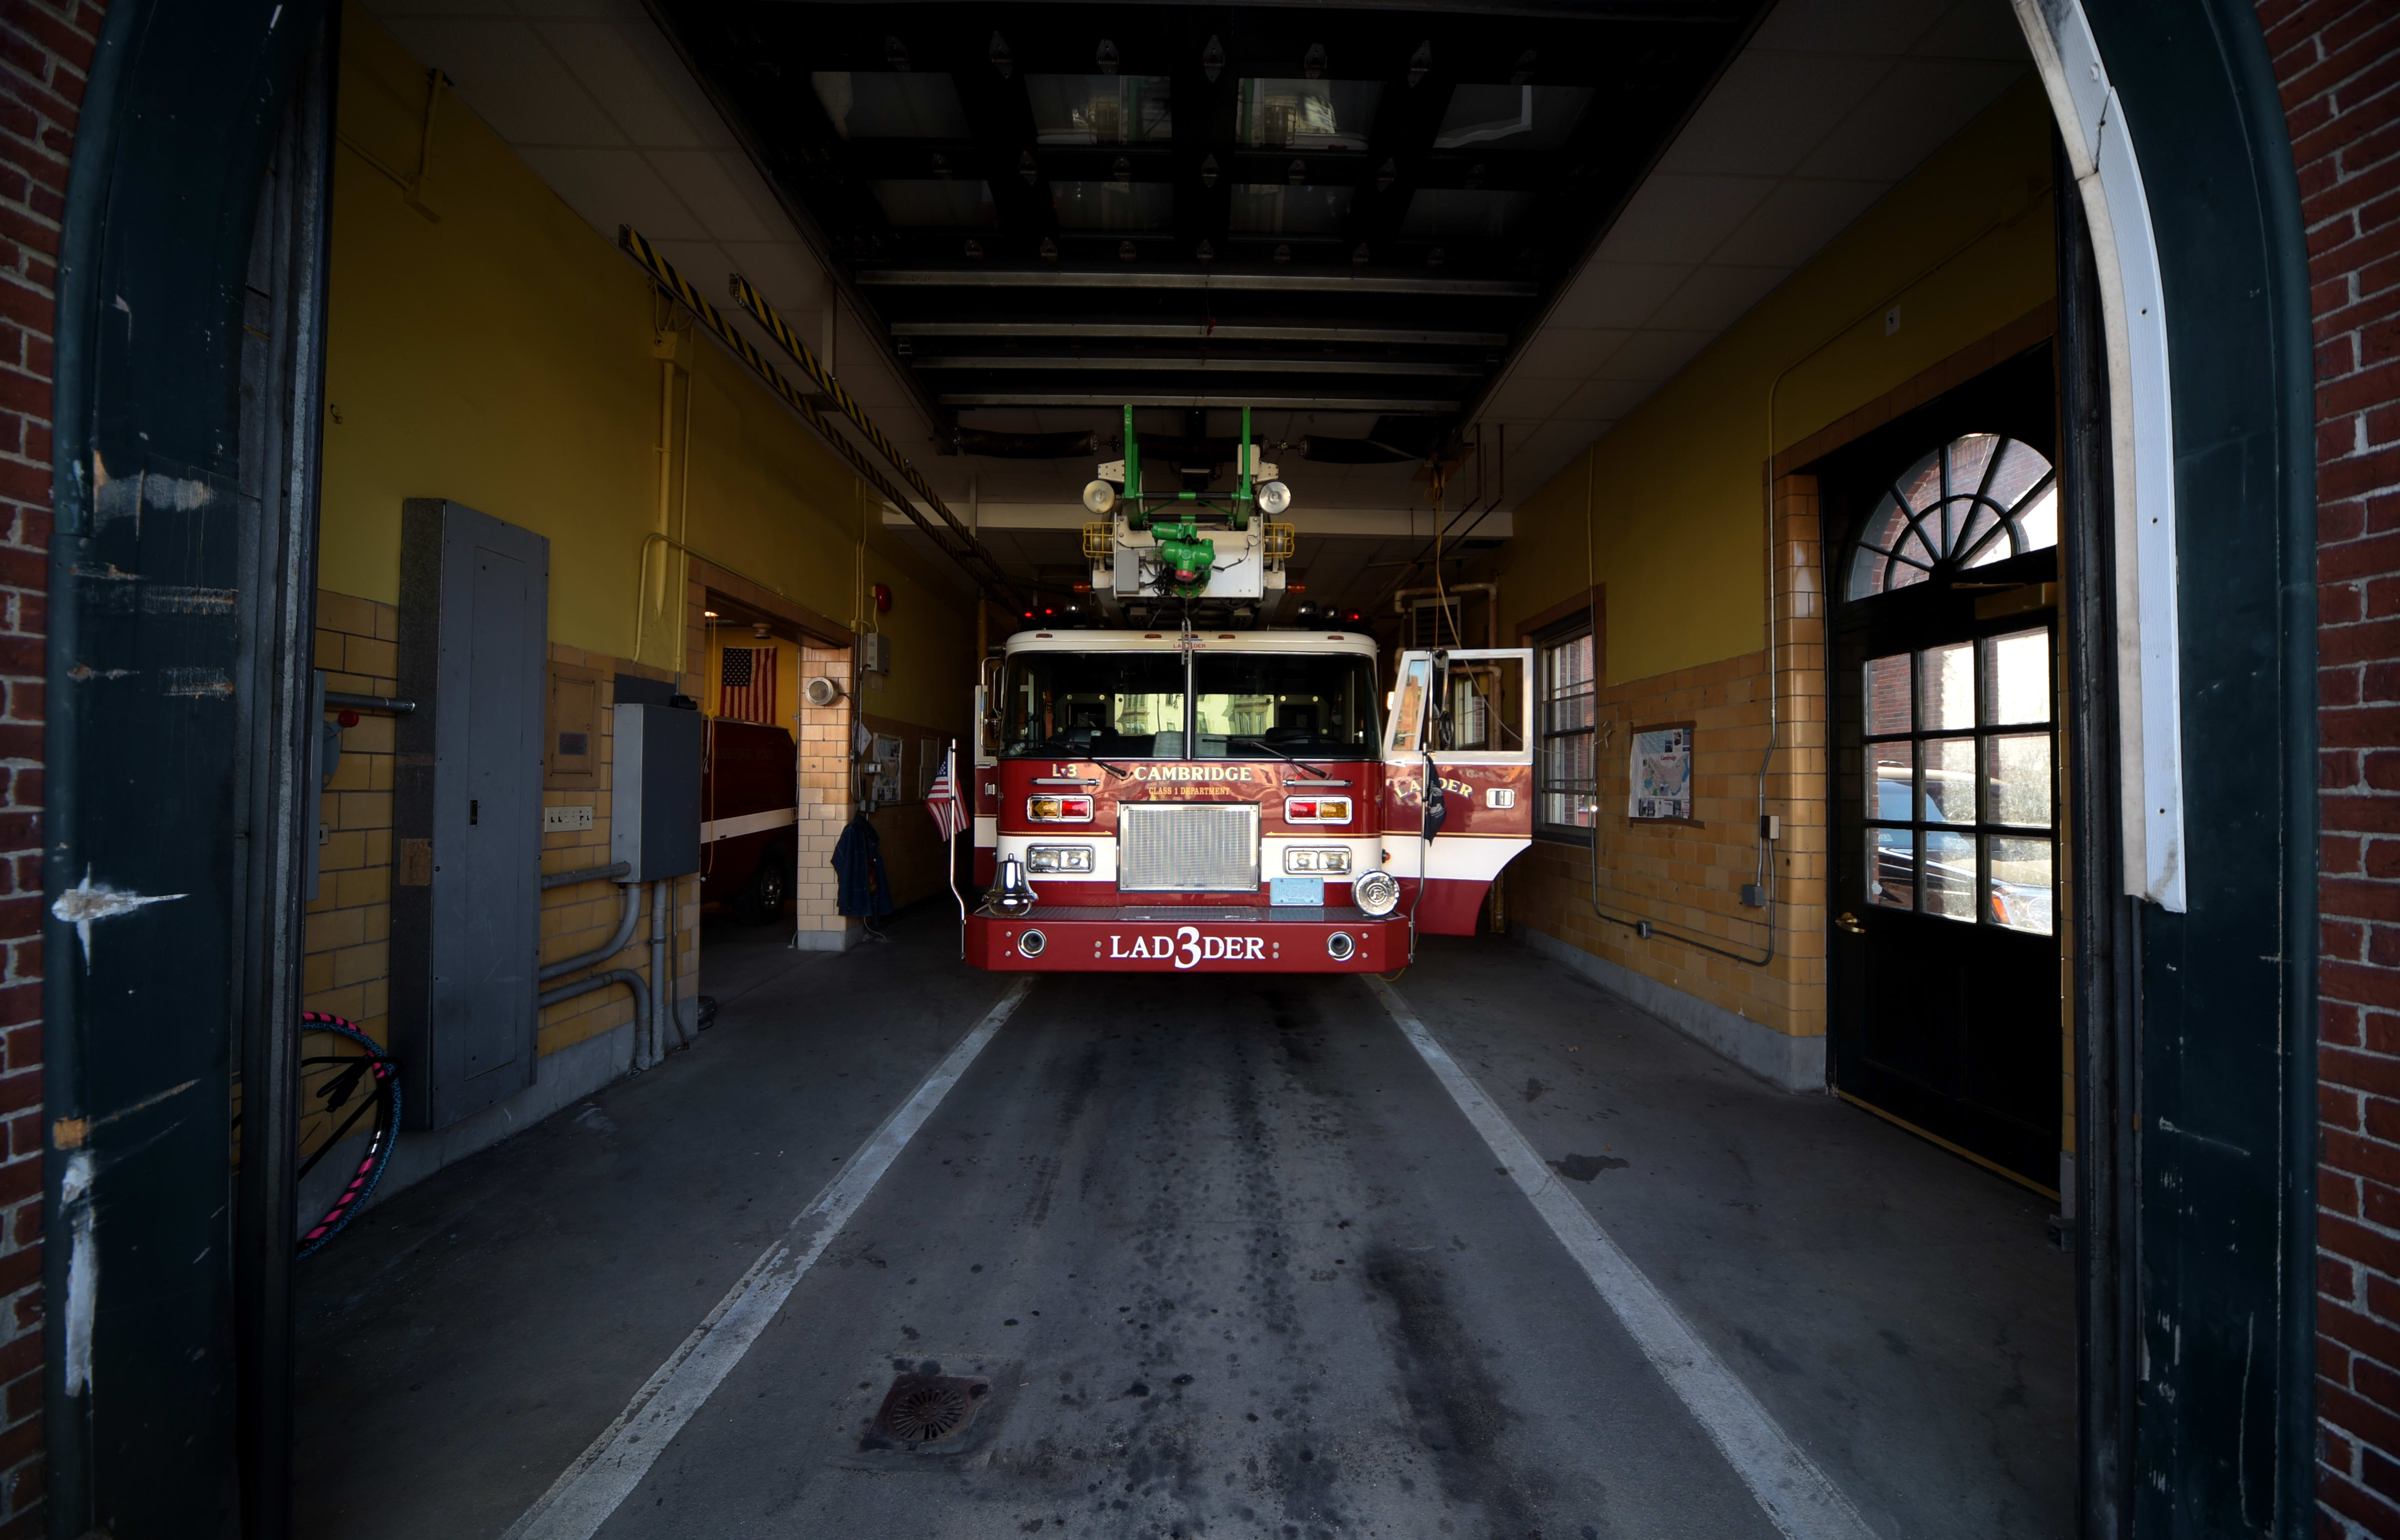 The Nikon D4S and the 24-70mm lens do well in this shot of a firetruck in downtown Cambridge.